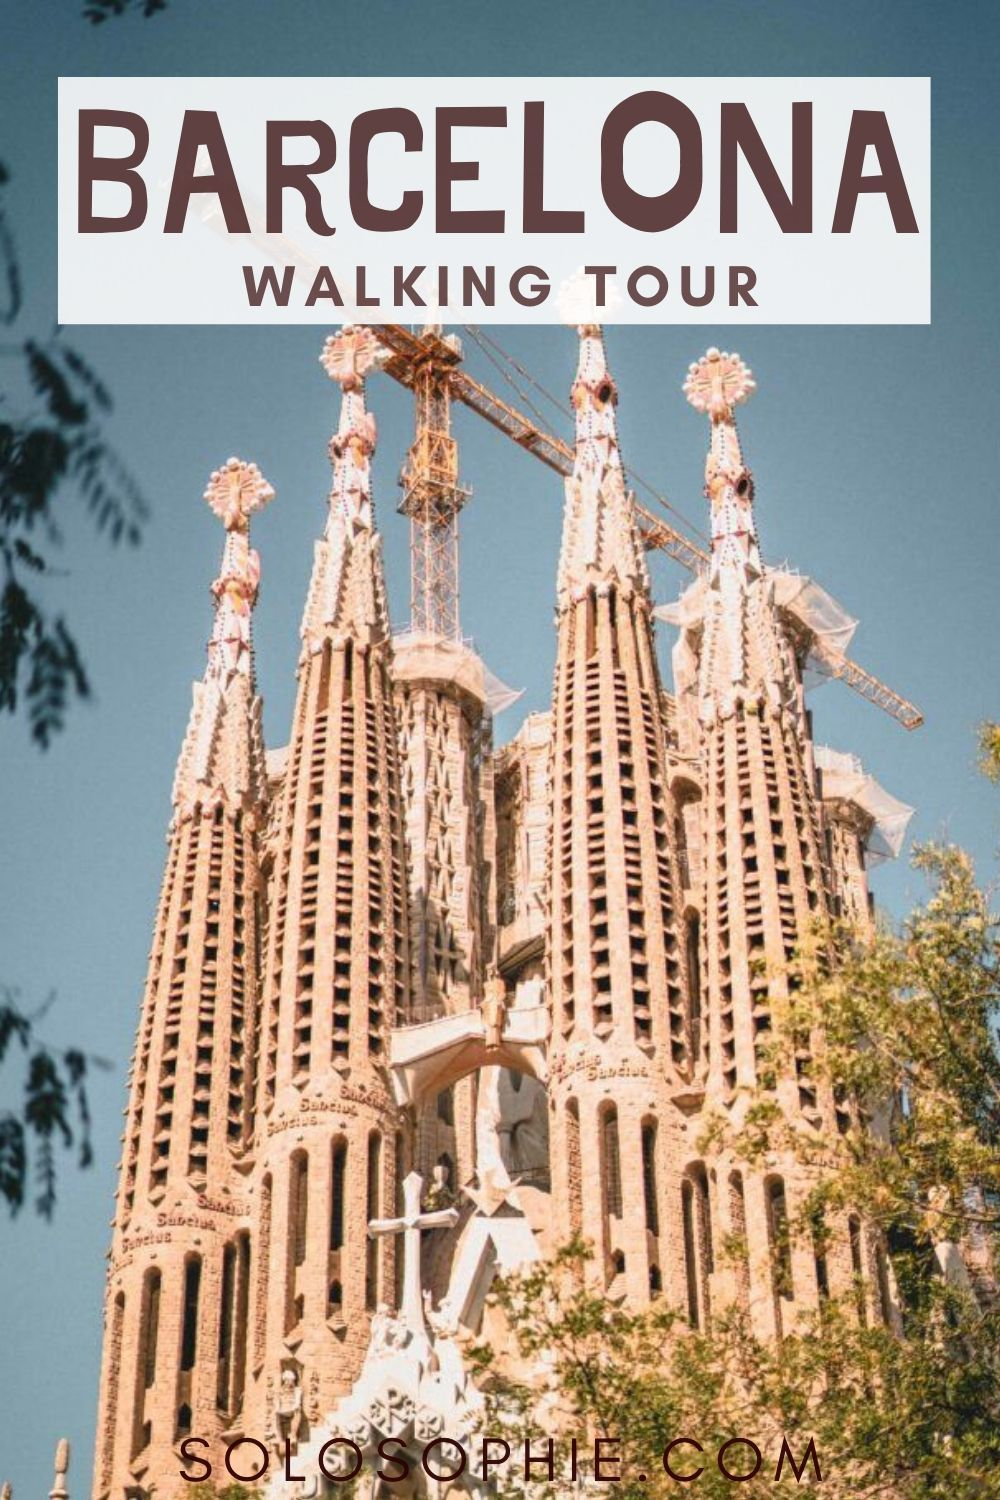 BARCELONA WALKING TOUR: fancy seeing the best of Barcelona? Here's a self guided free walking guide to the top things to do in Barcelona, Spain